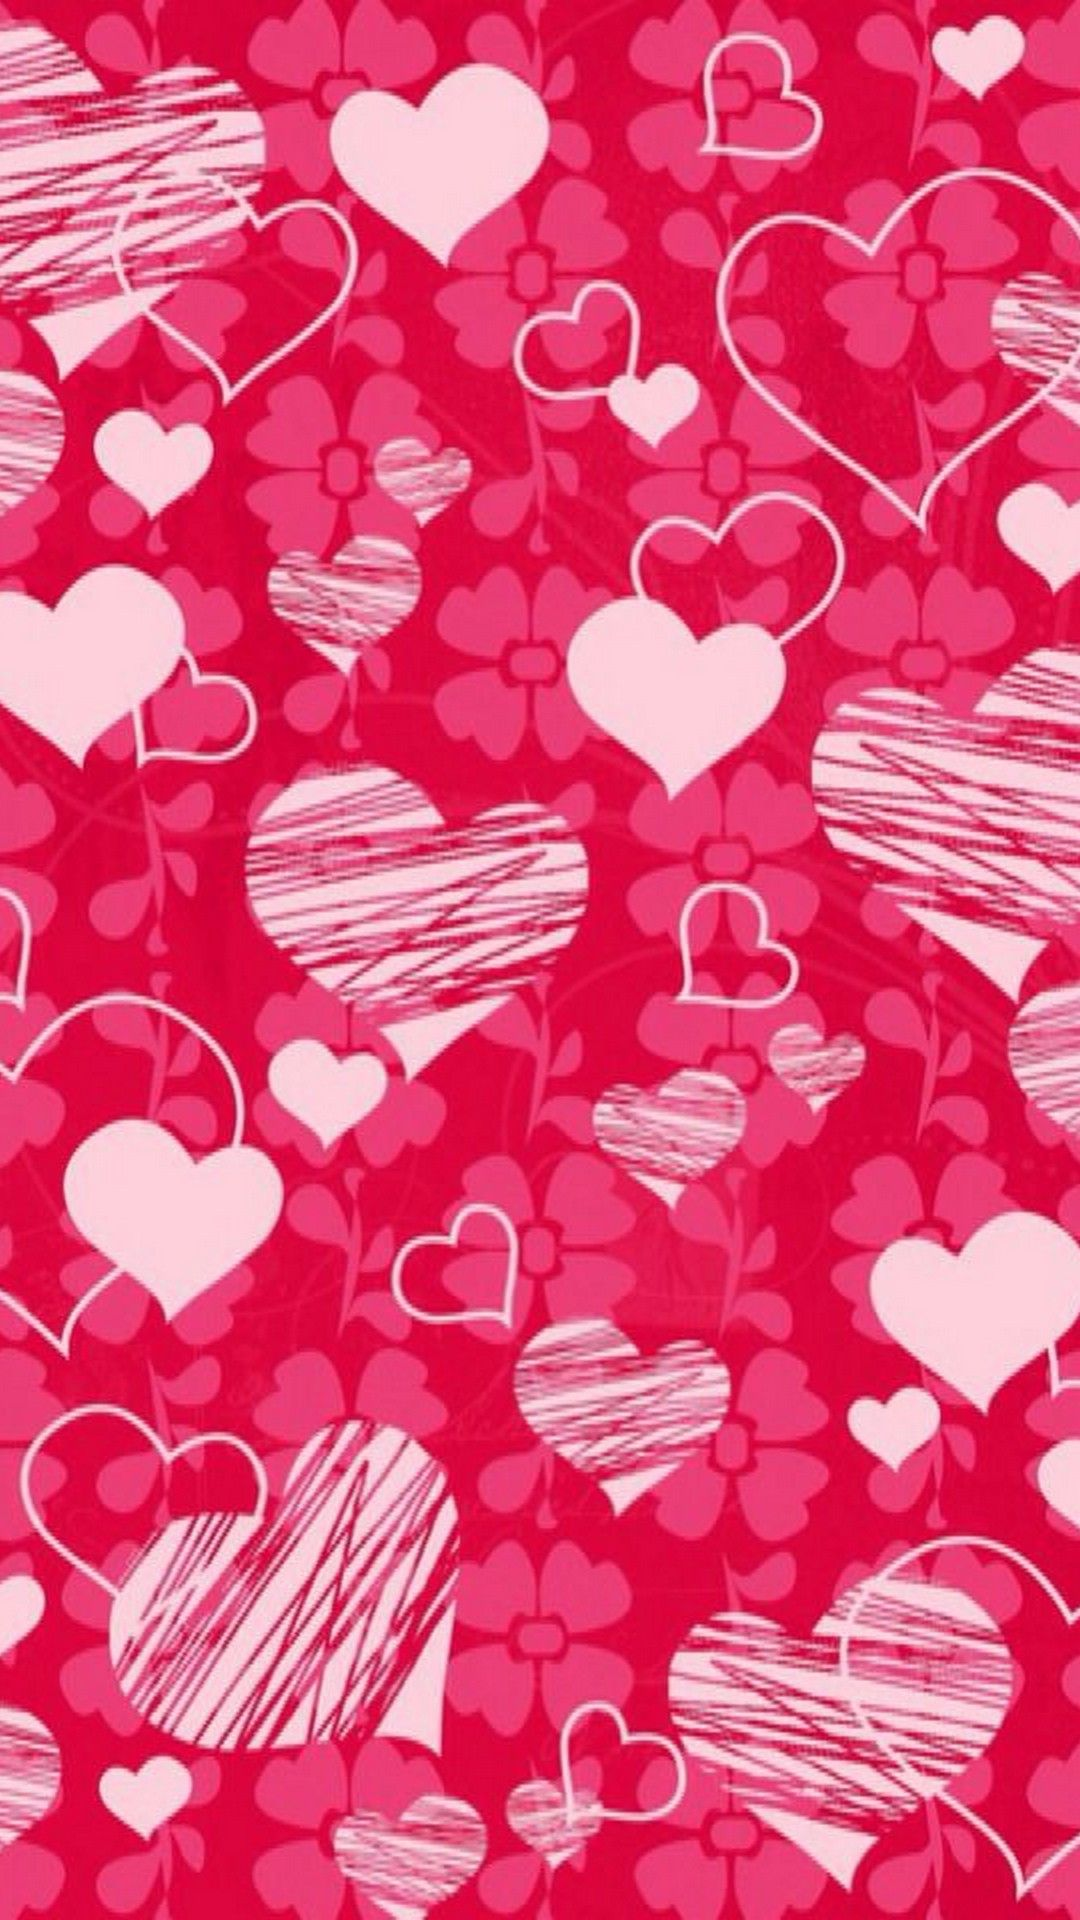 Valentine's Day iPhone Wallpaper Gallery Best iPhone